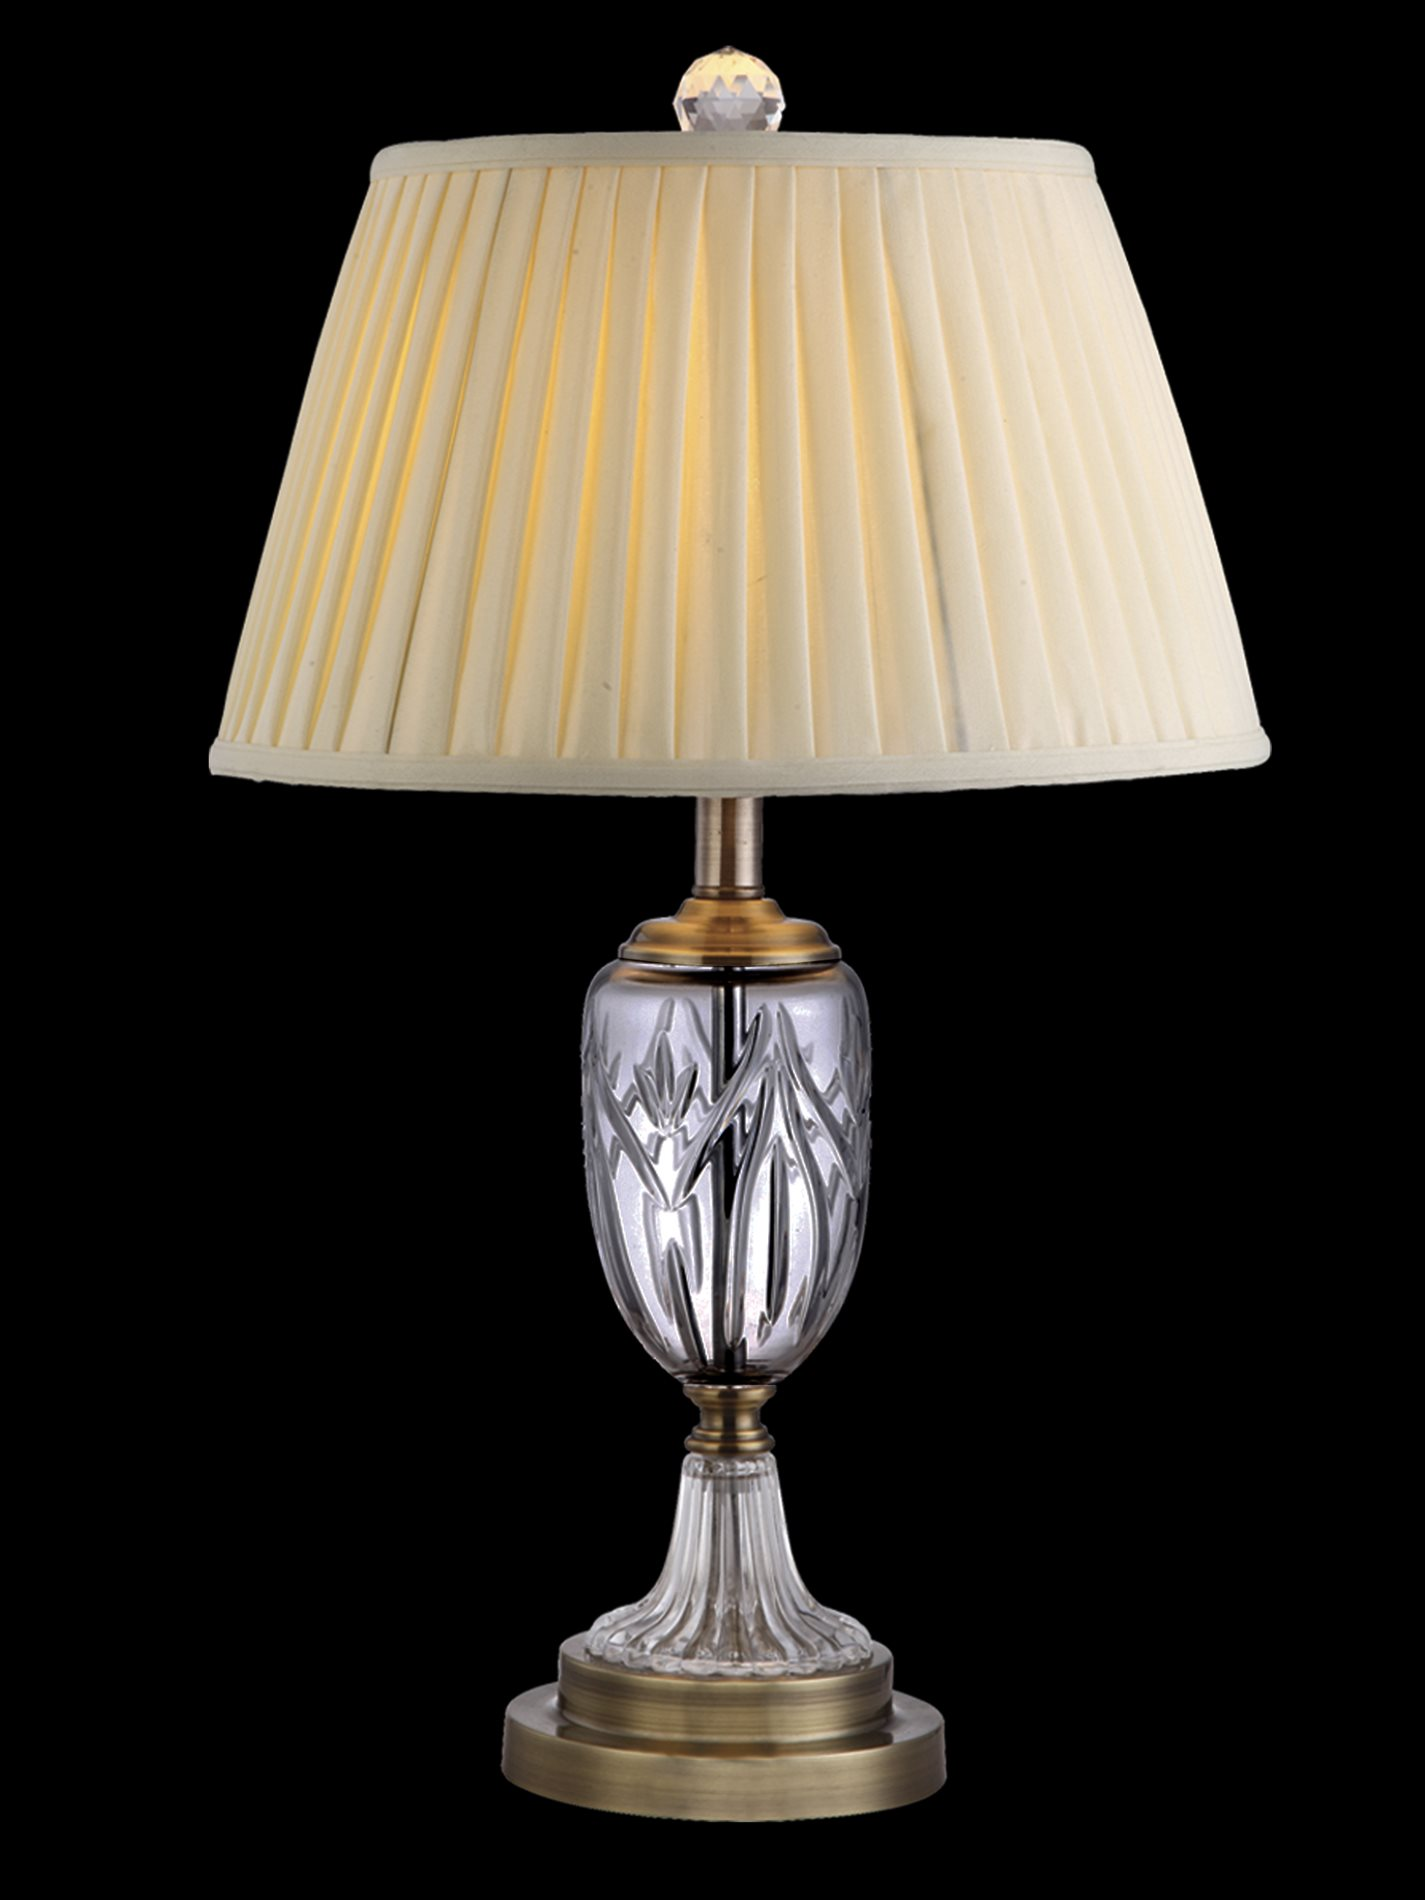 Yosemite Home Decor Dale Tiffany Gt10225 Crystal Transitional Table Lamp Dt